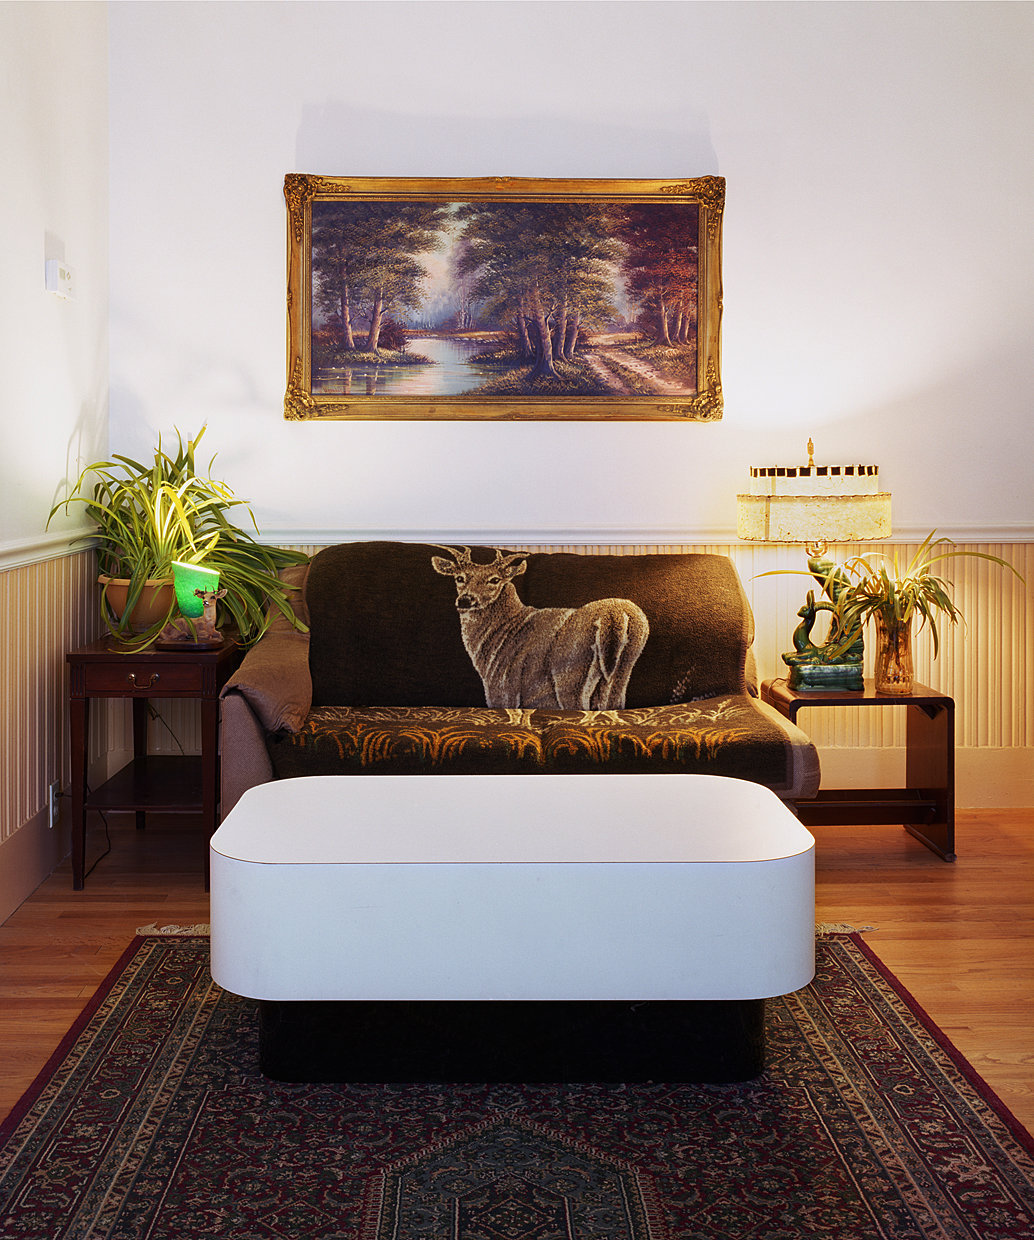 Untitled Interior (deer couch), 2010